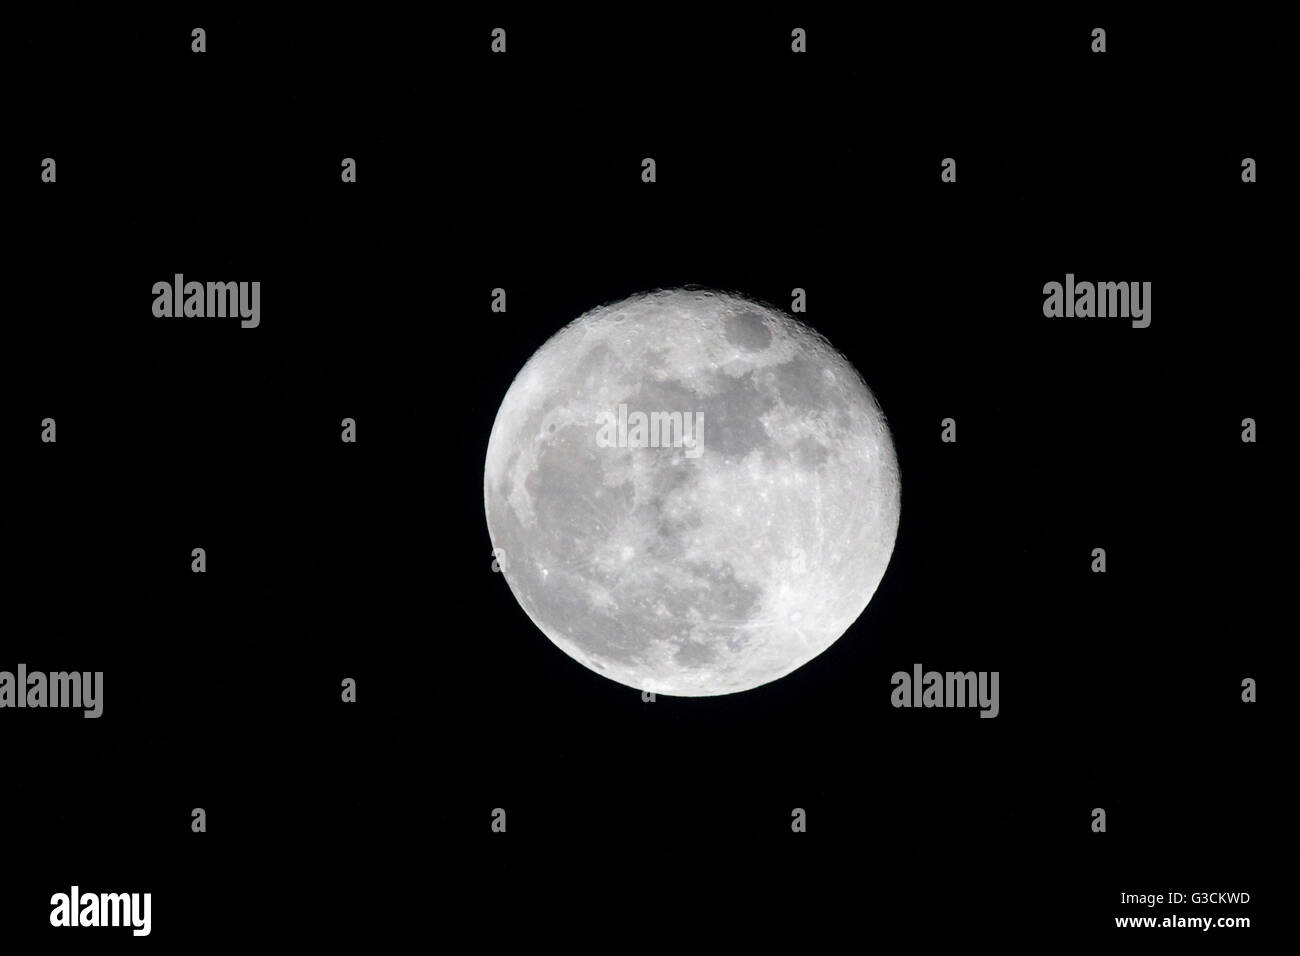 Full moon - Stock Image